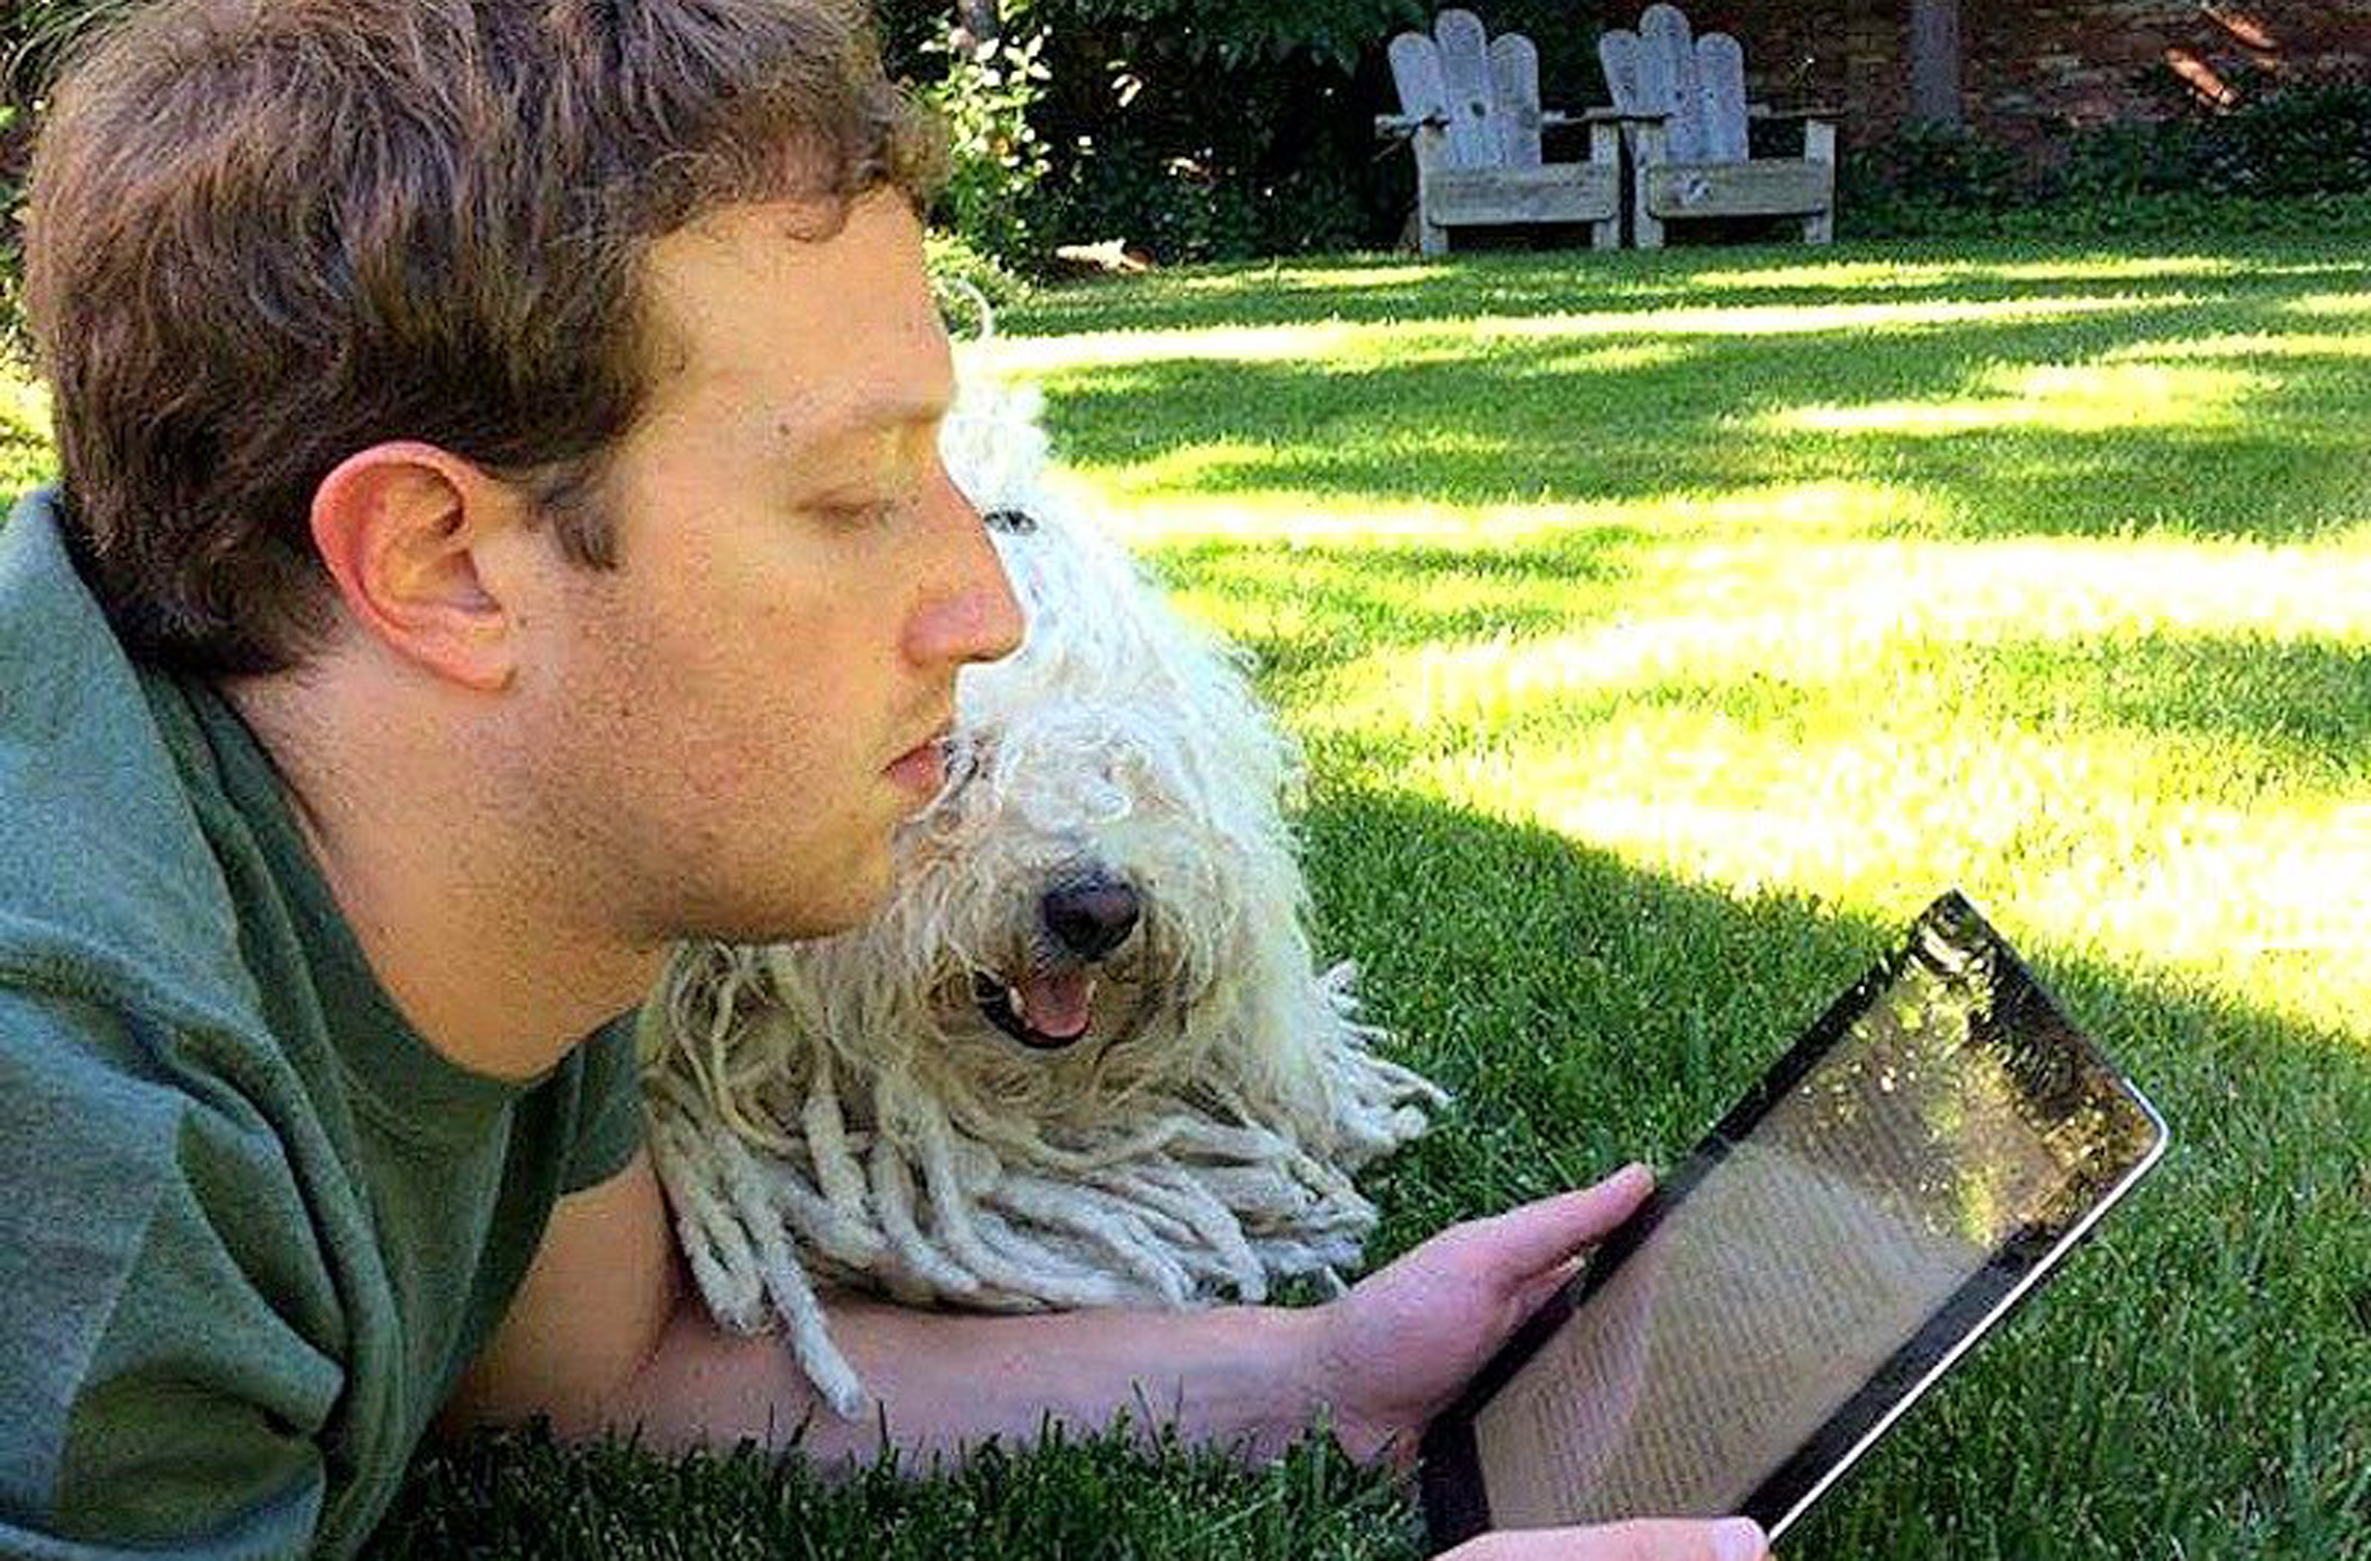 Zuckerberg Reading iPad